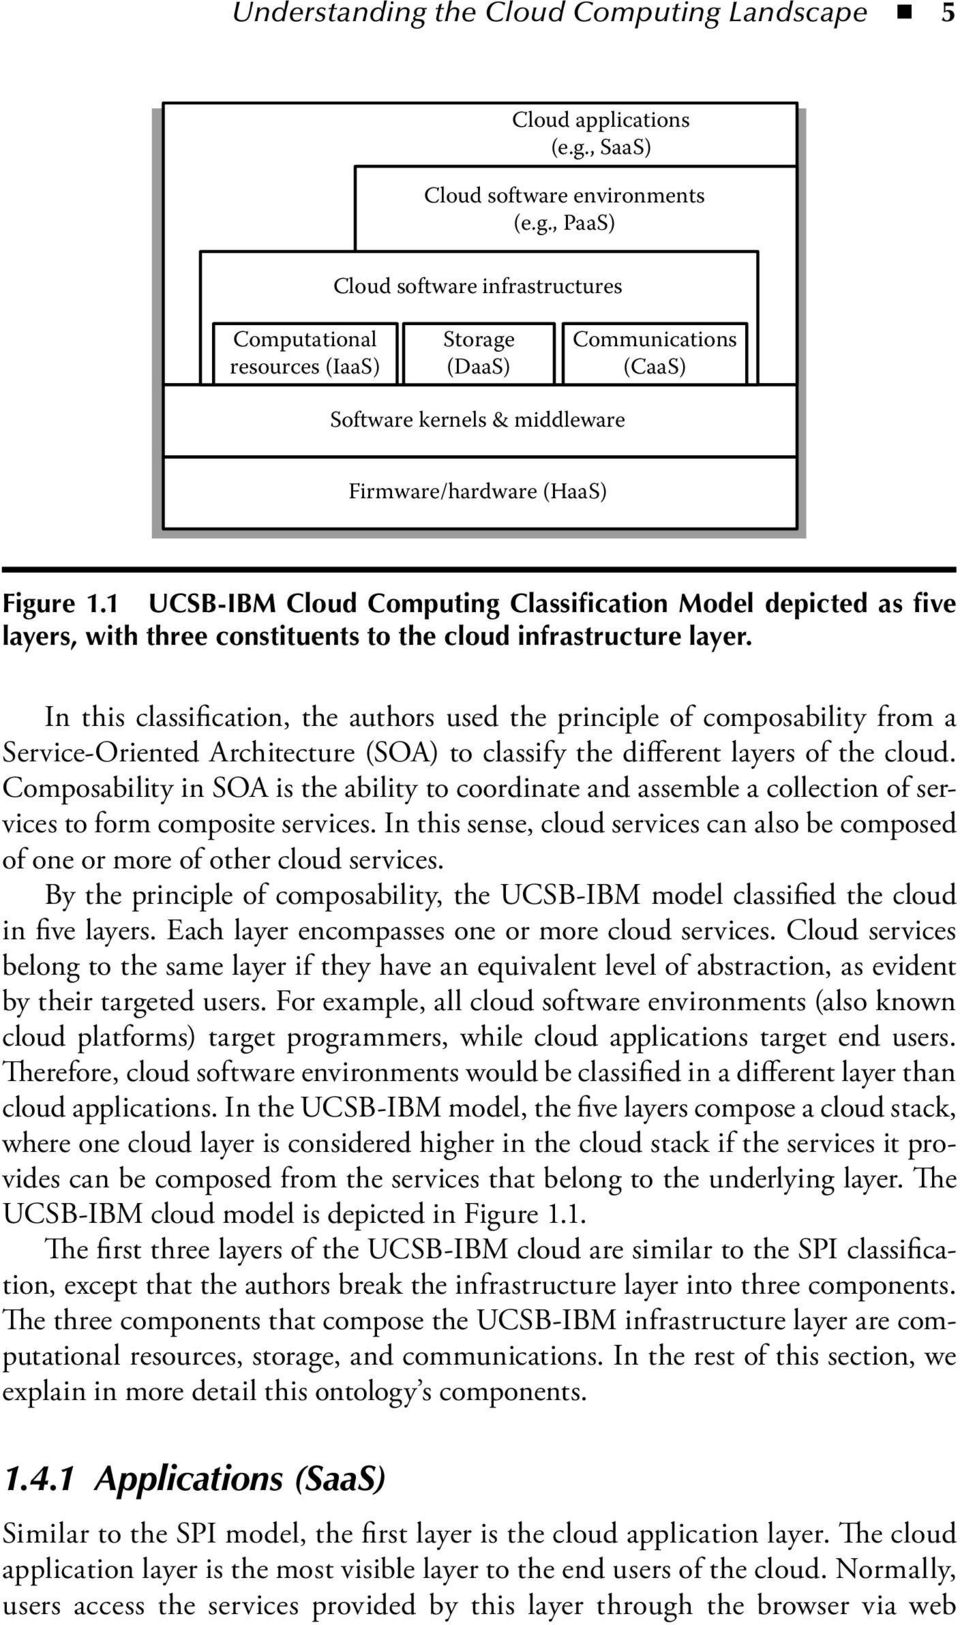 In this classification, the authors used the principle of composability from a Service-Oriented Architecture (SOA) to classify the different layers of the cloud.